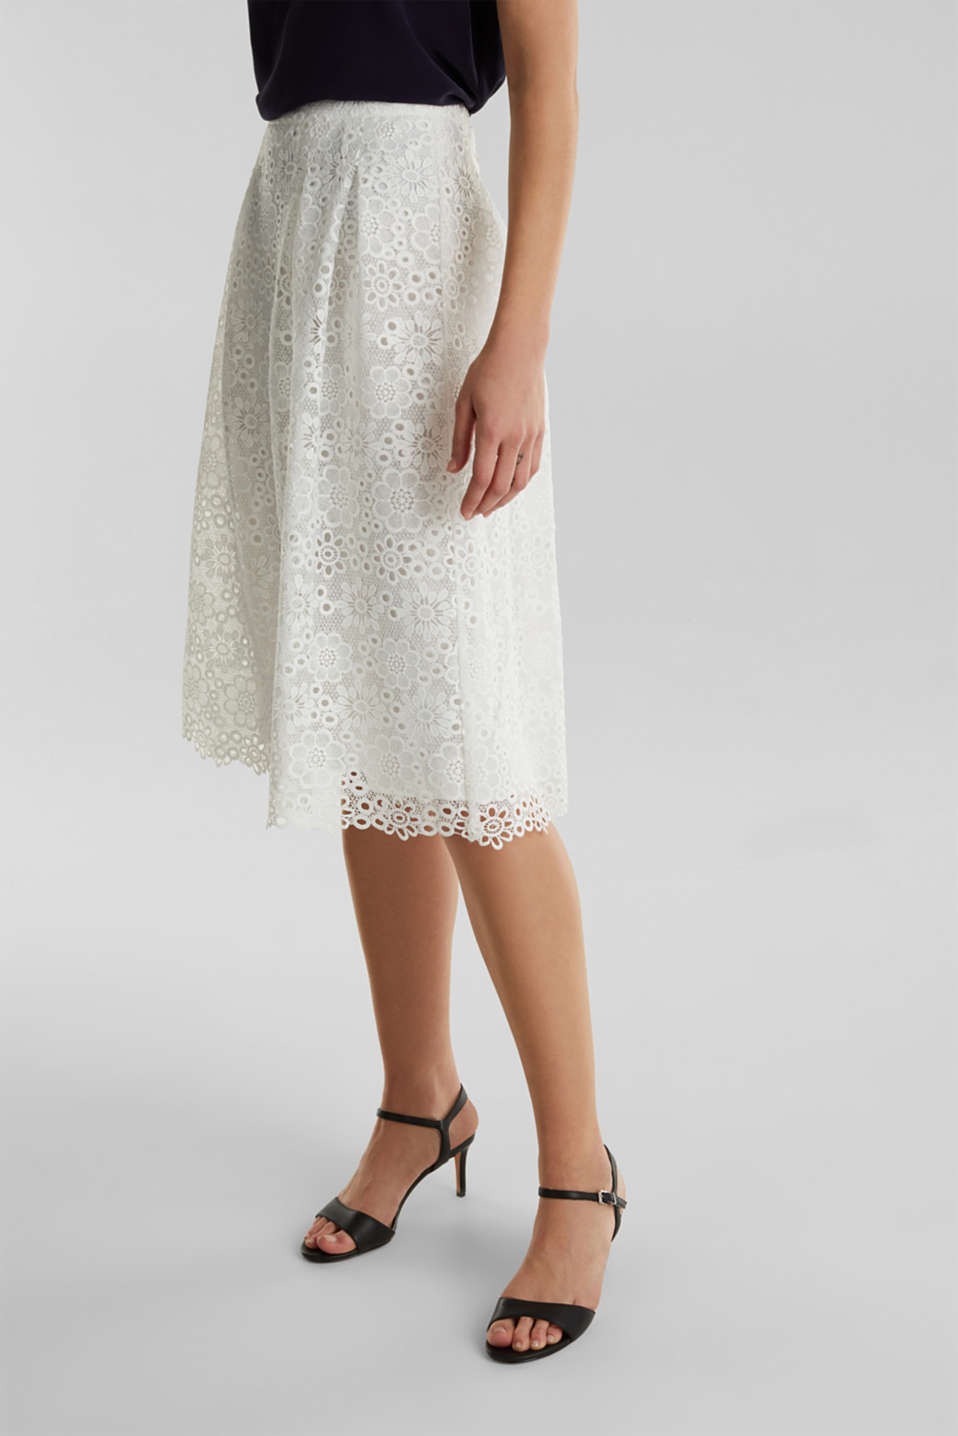 Lace midi skirt in A-line design, WHITE, detail image number 5